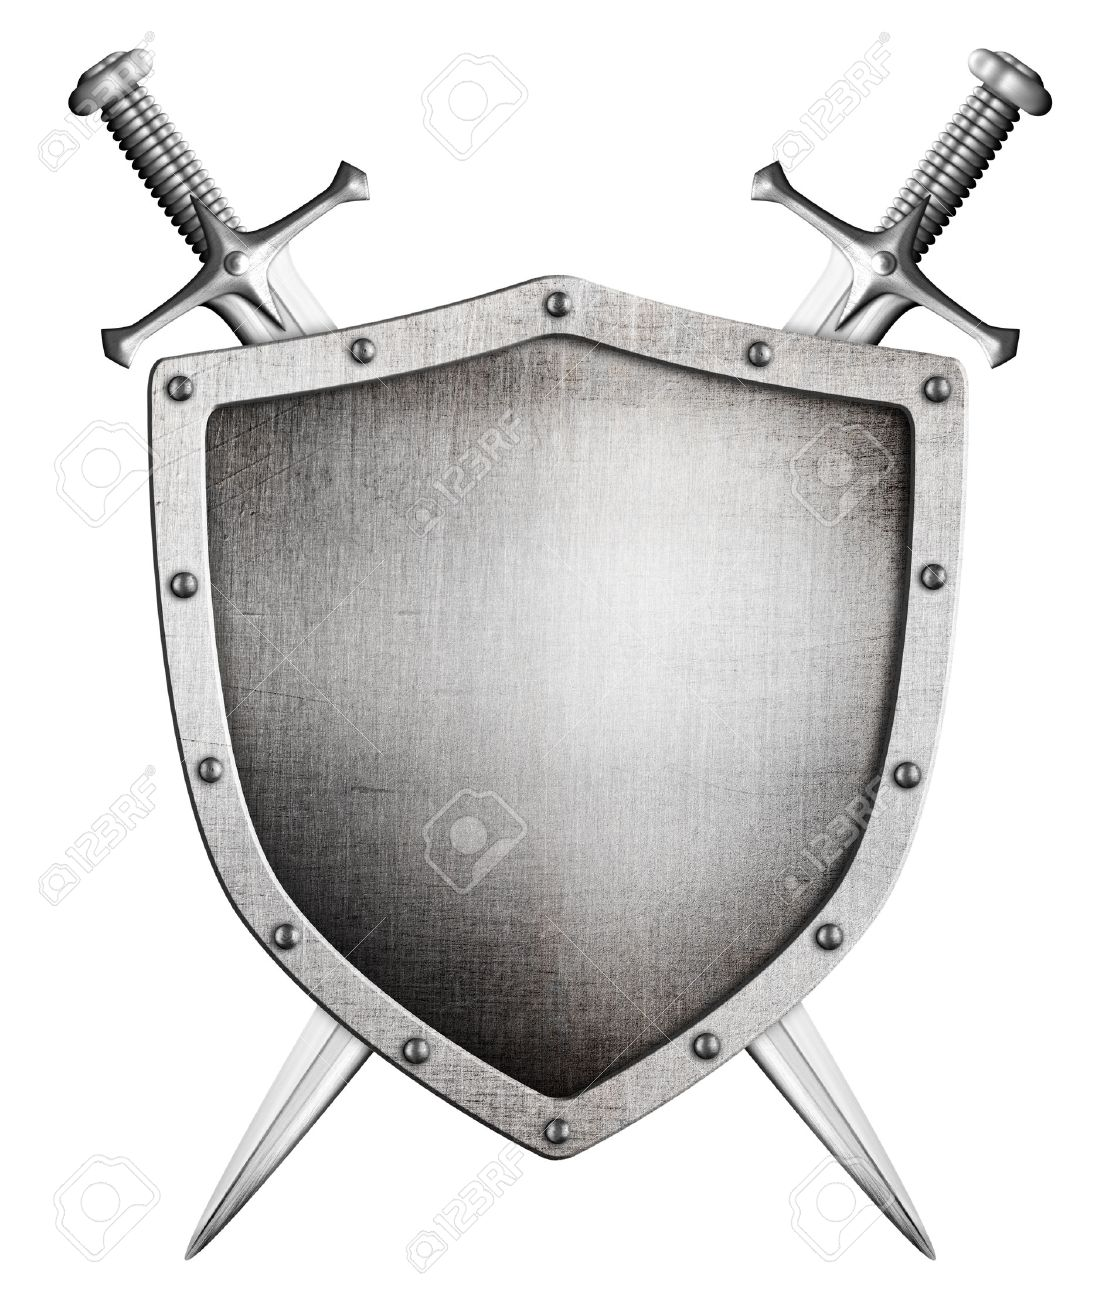 metal medieval shield and crossed swords behind it isolated on